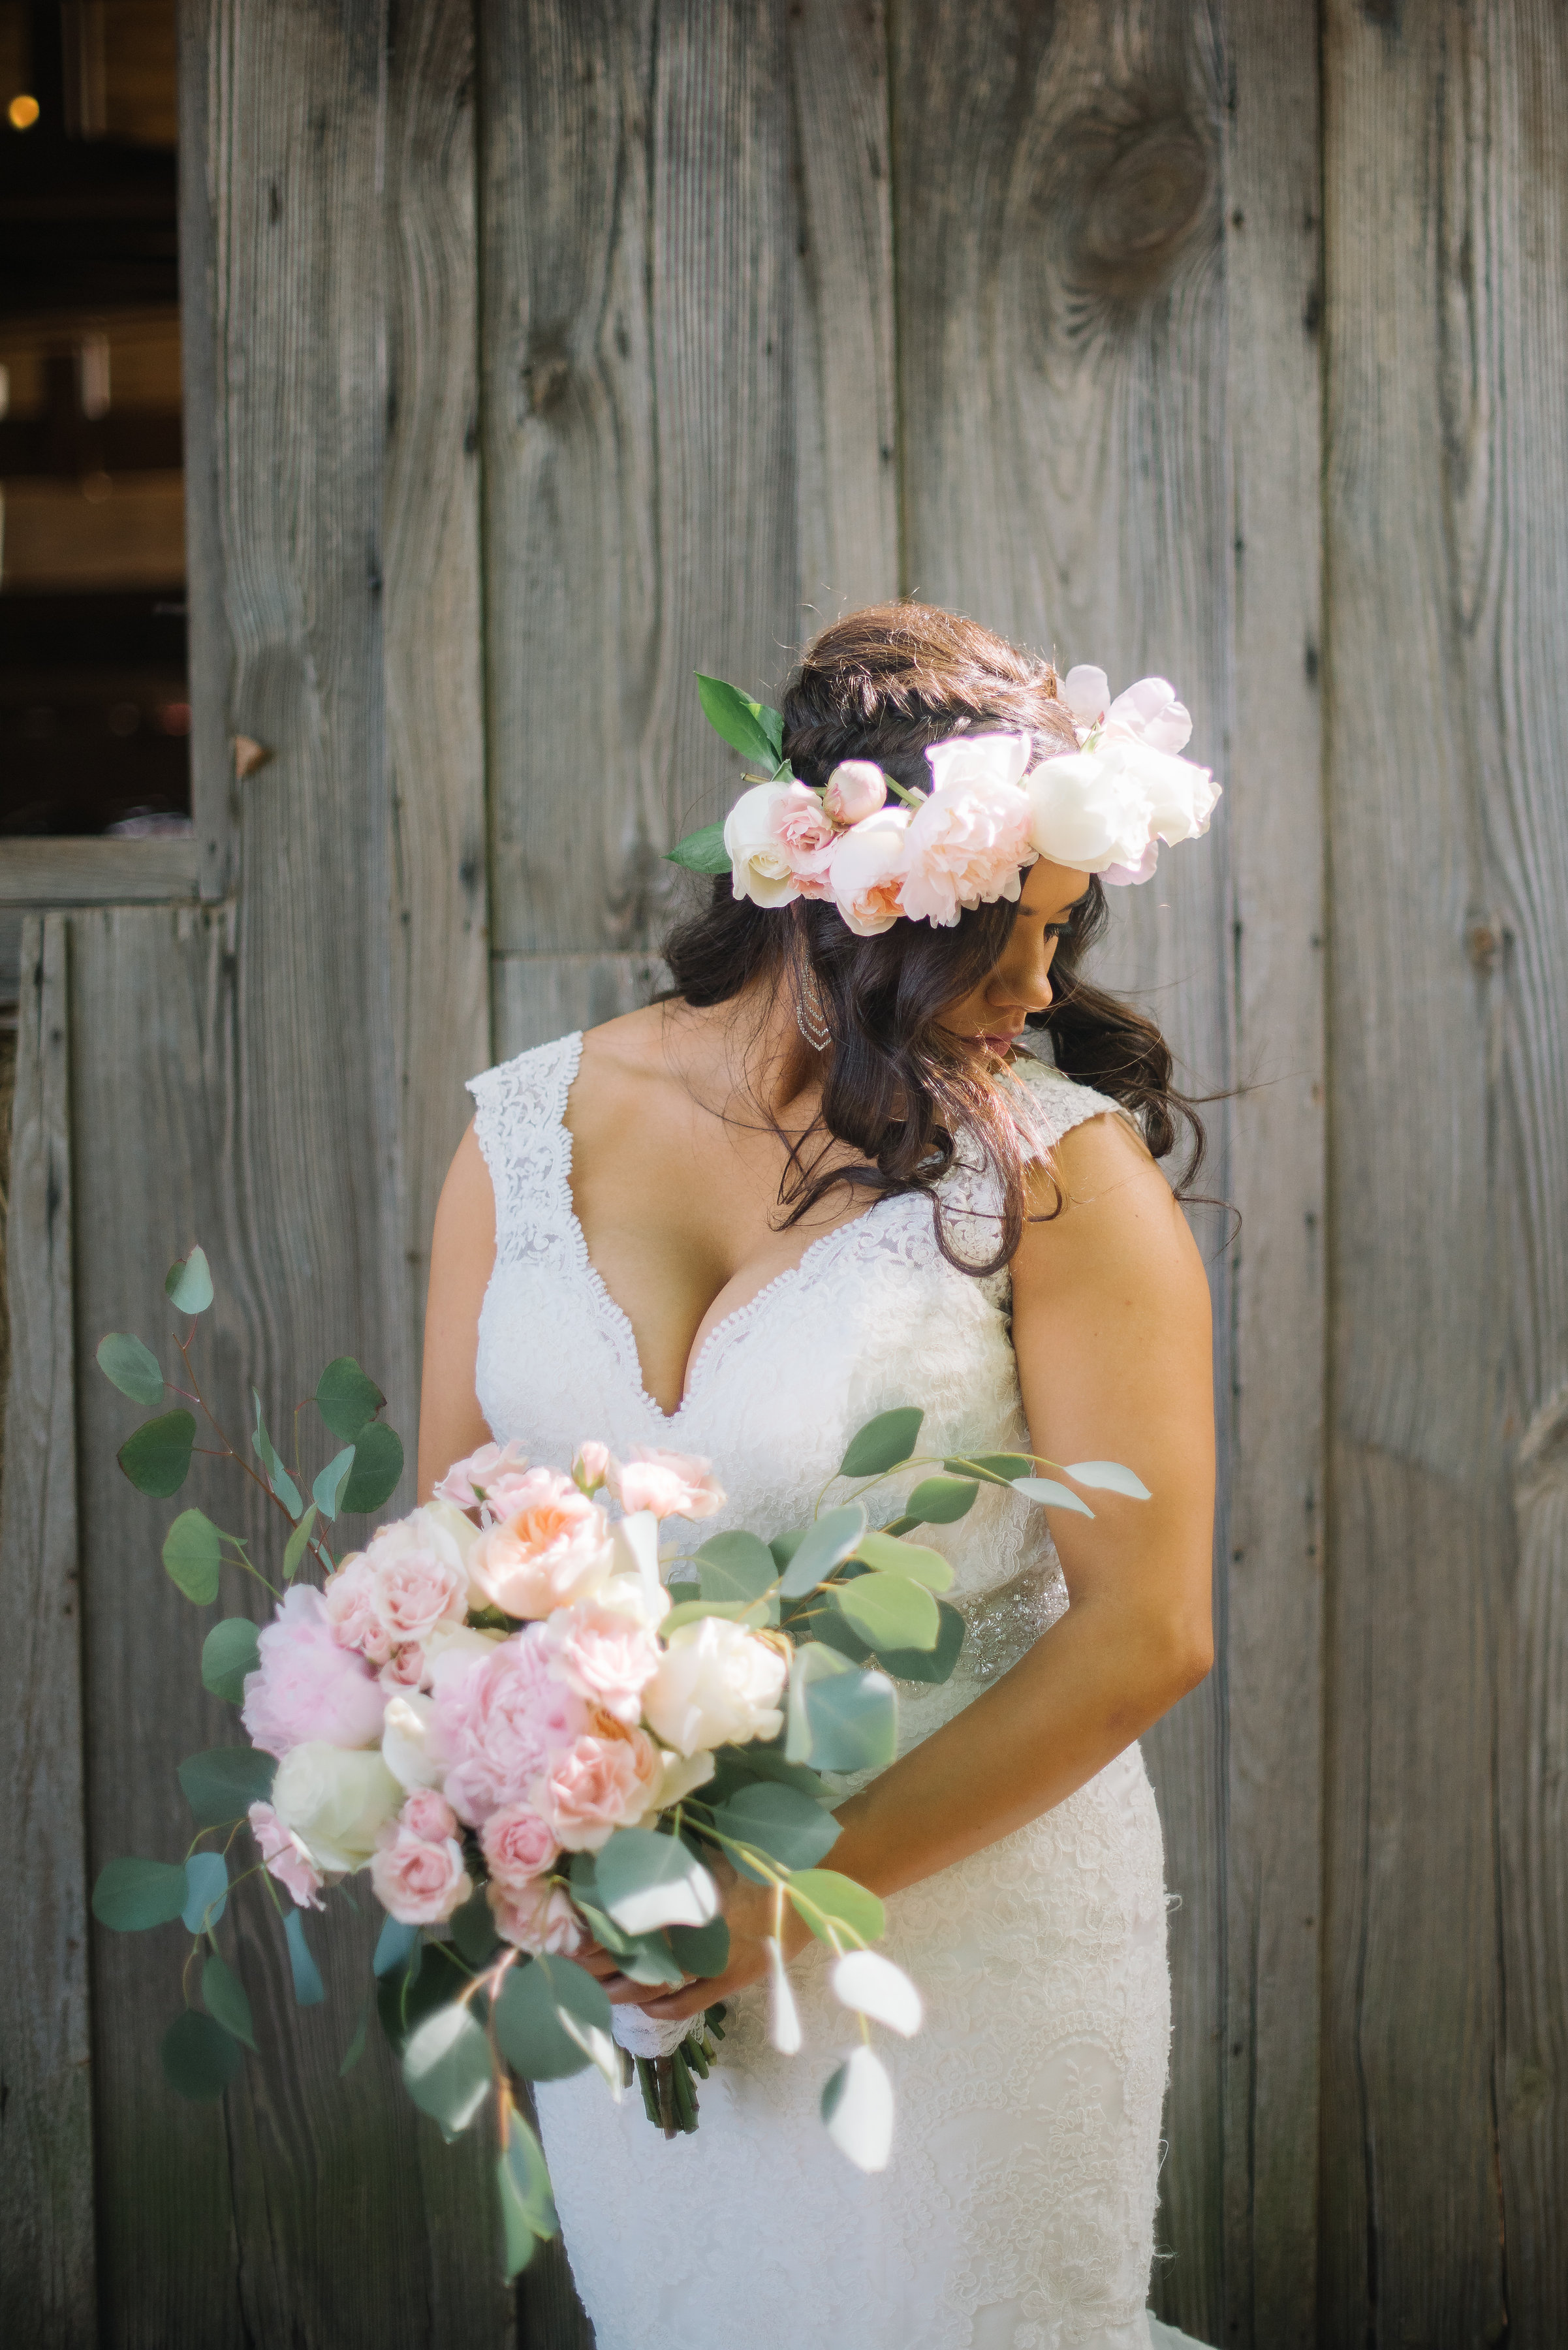 Lucy was the most gorgeous bride and flawlessly pulled off the most beautiful floral crown!